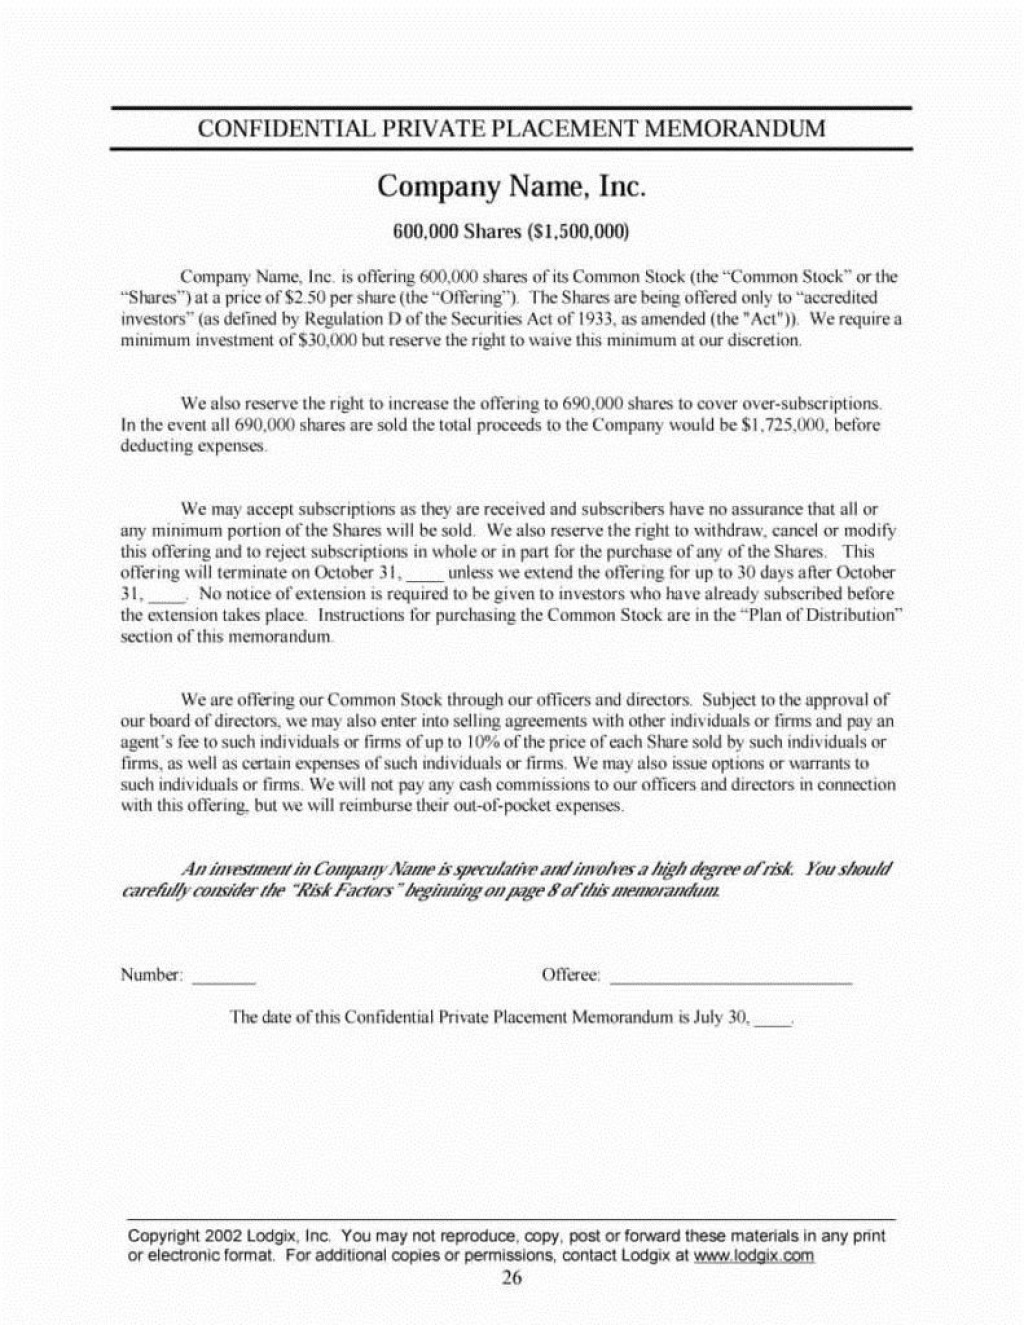 003 Stupendou Private Placement Memorandum Template Inspiration  Real Estate SingaporeLarge